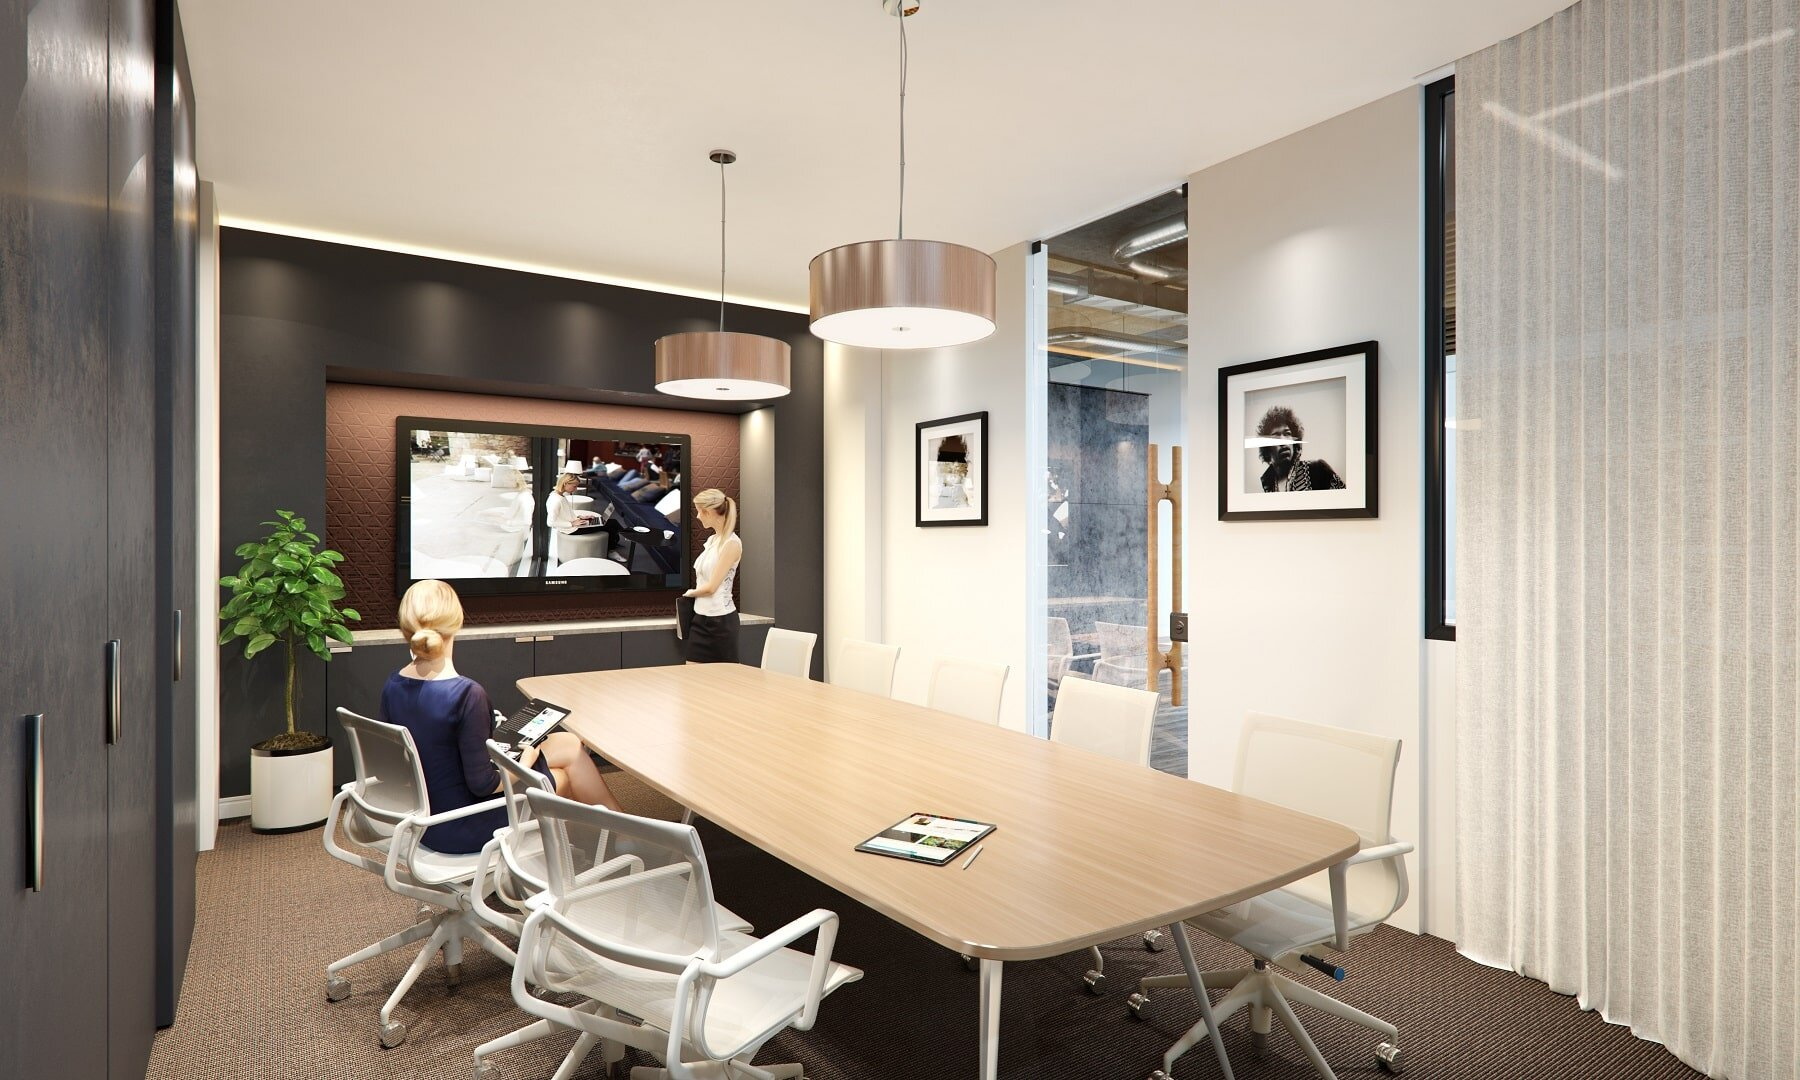 cgi-for-coworking-spaces-meeting-room-min.jpg